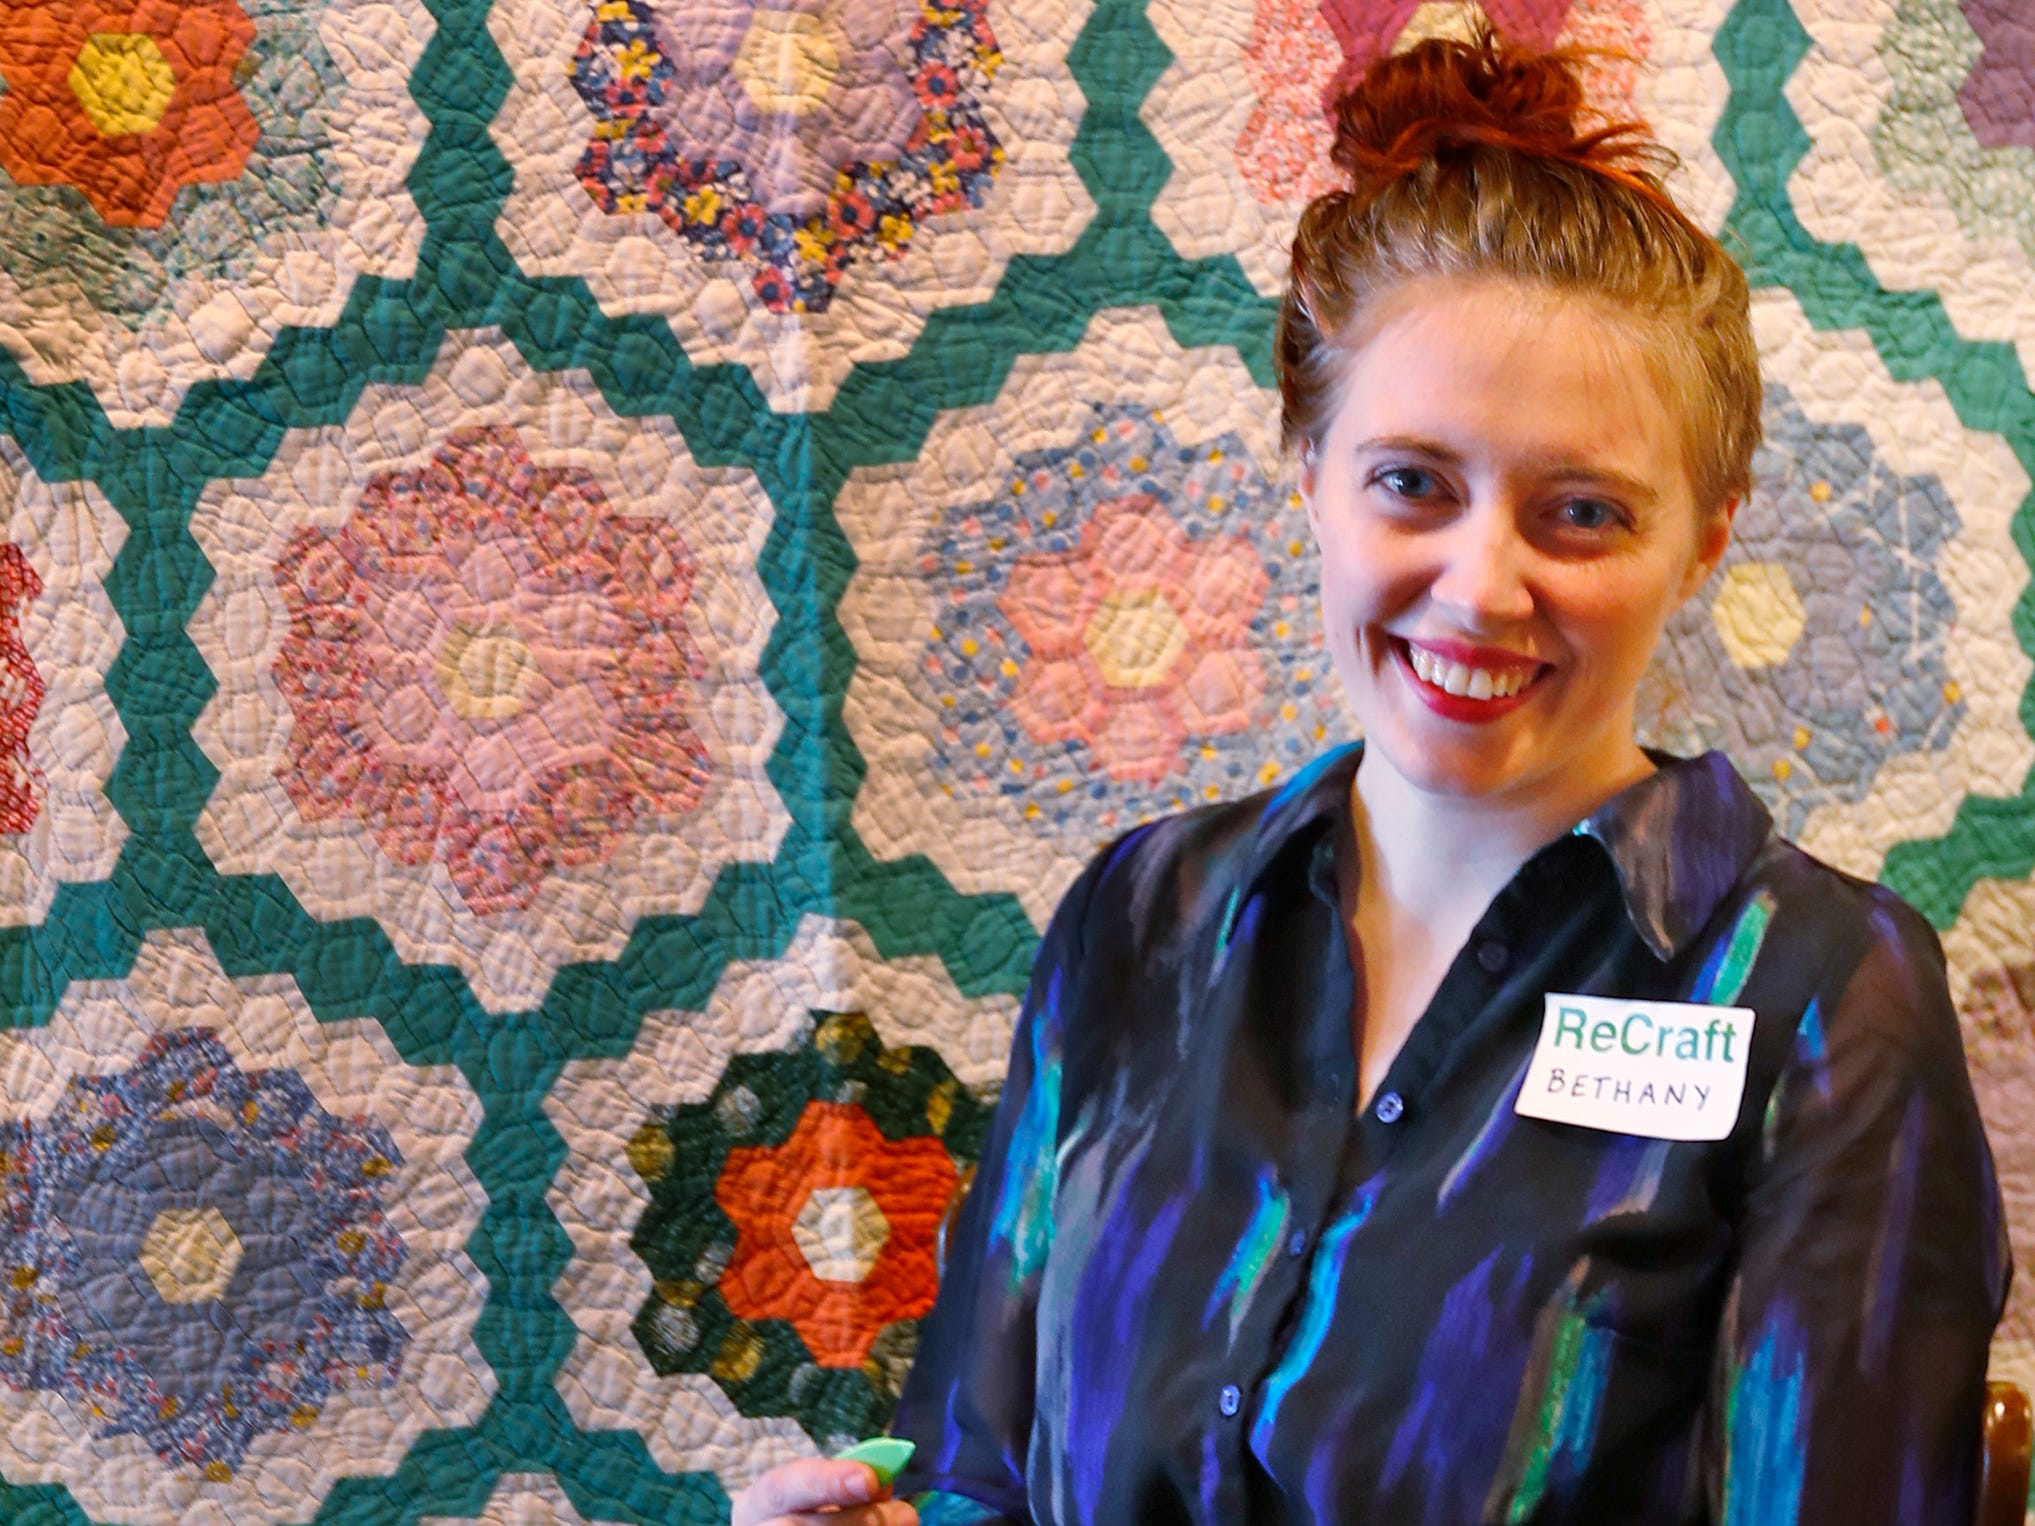 Bethany Daugherty is the owner of ReCraft, Tuesday, Dec. 11, 2018.  ReCraft was born out of Daugherty's love of crafting and her interest in environmental activism.  At the secondhand craft and hobby store, Daugherty also teaches workshops.  Sustainability and environmentalism are the focus of the store.  This day at ReCraft is Giving Back Day.  Customers are welcomed to come in to knit or crochet hats and scarves for the homeless.